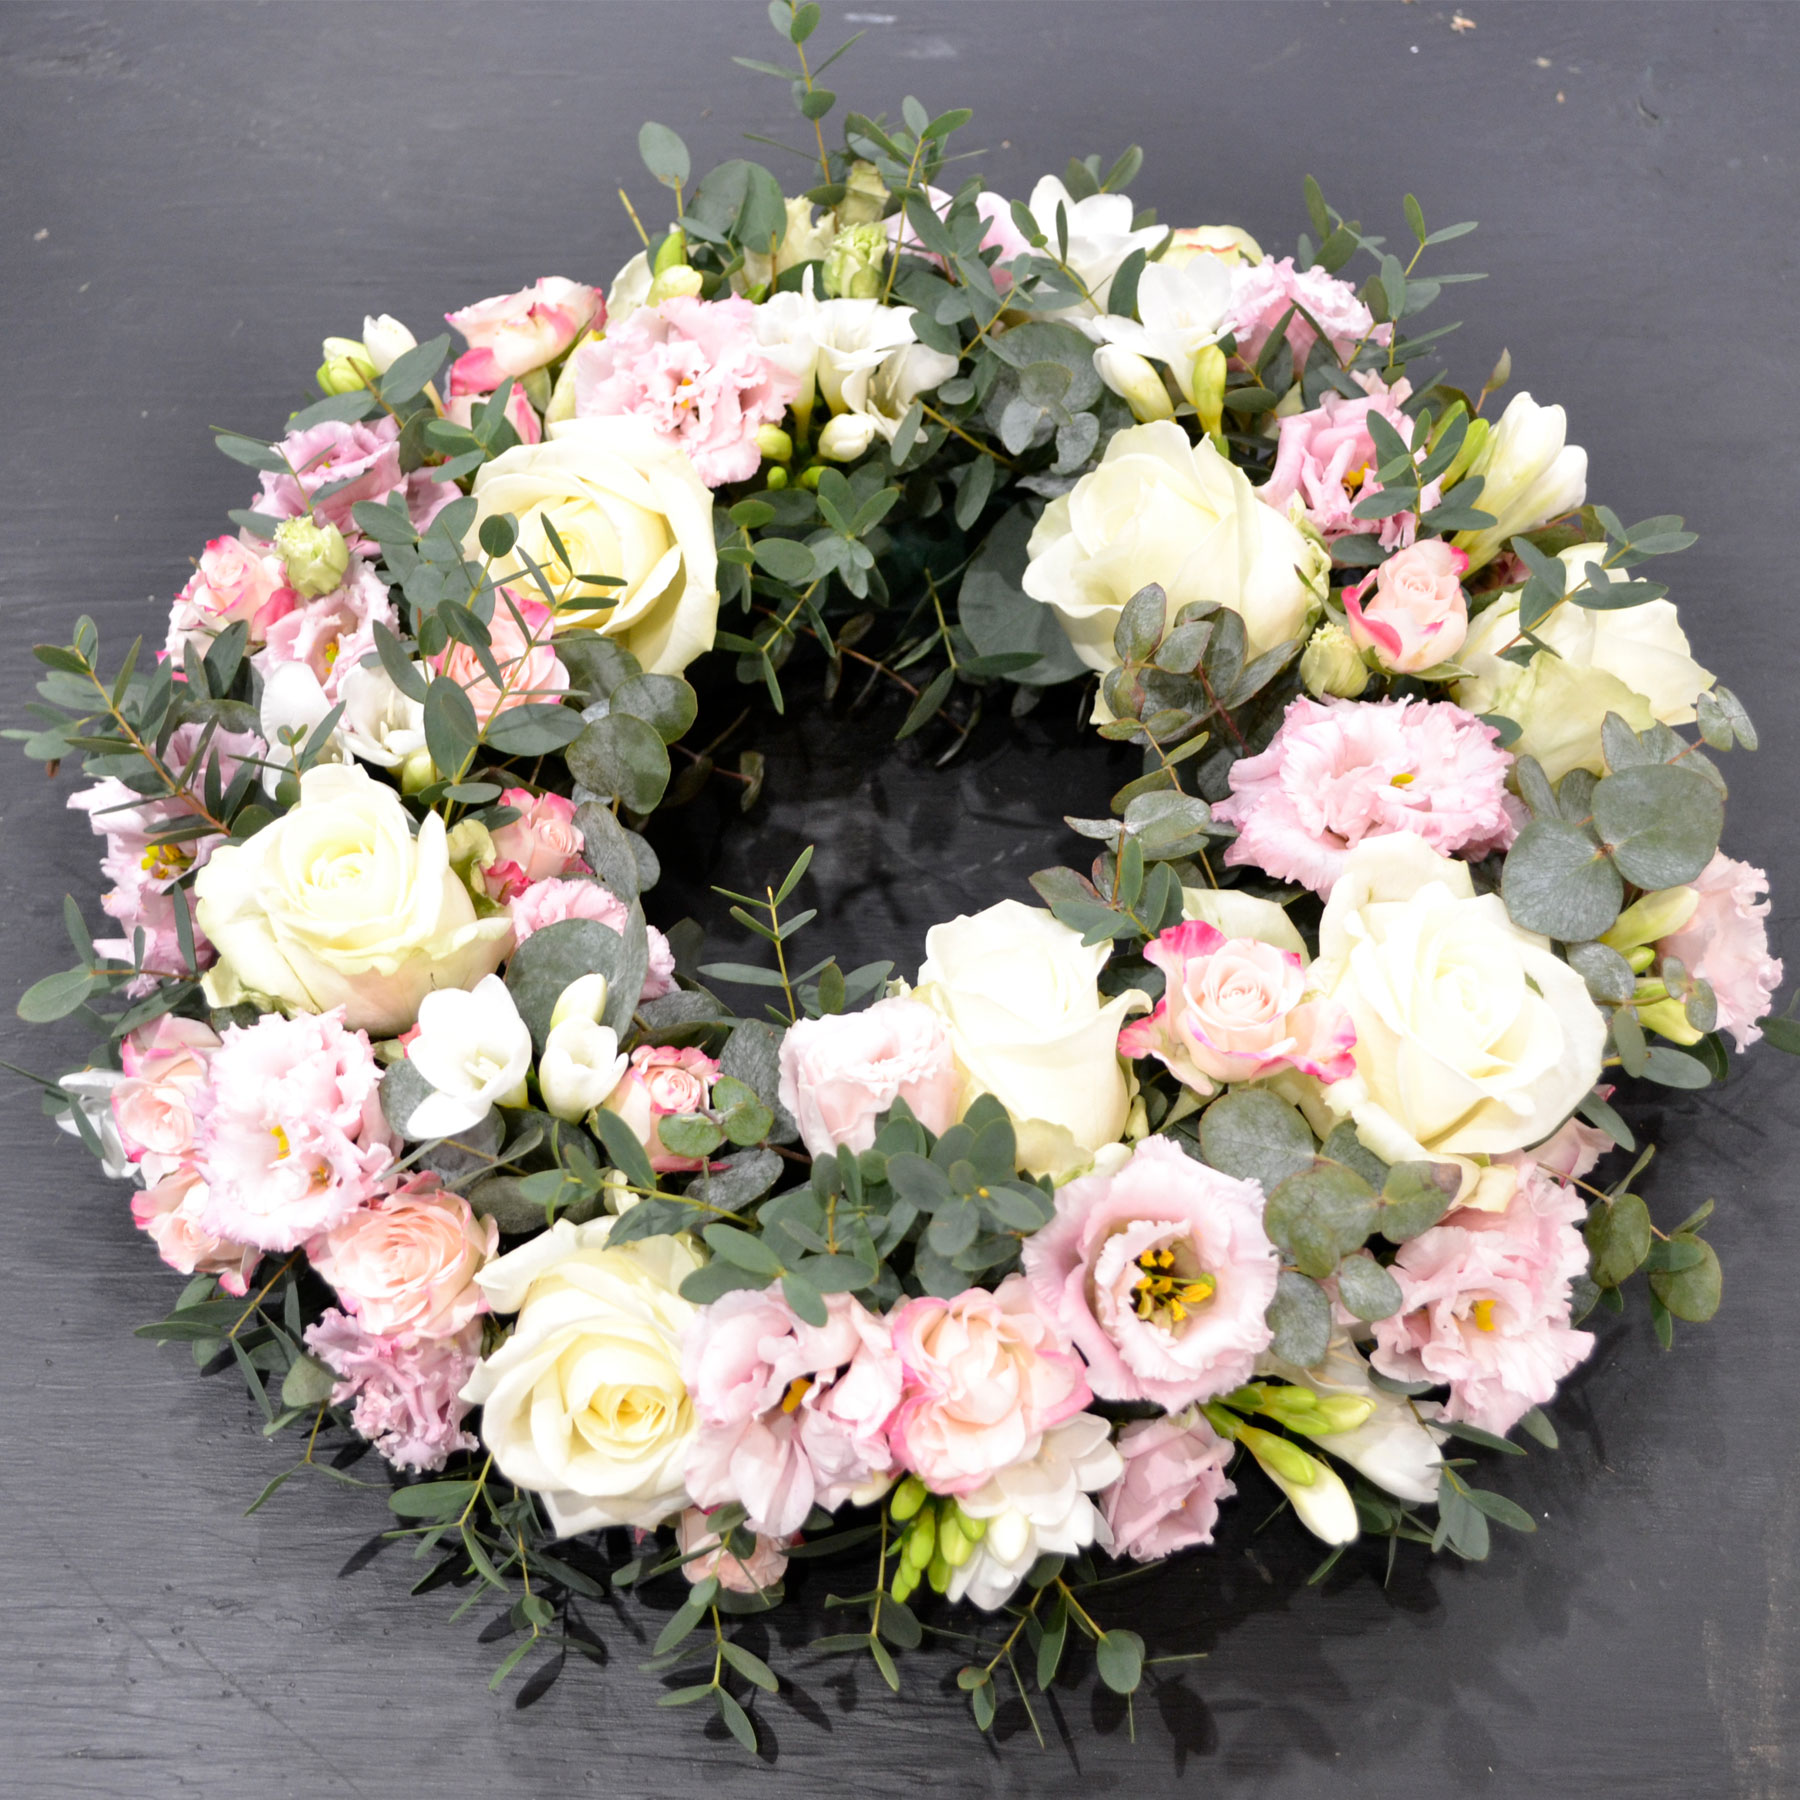 Buy Funeral Flowers in UK